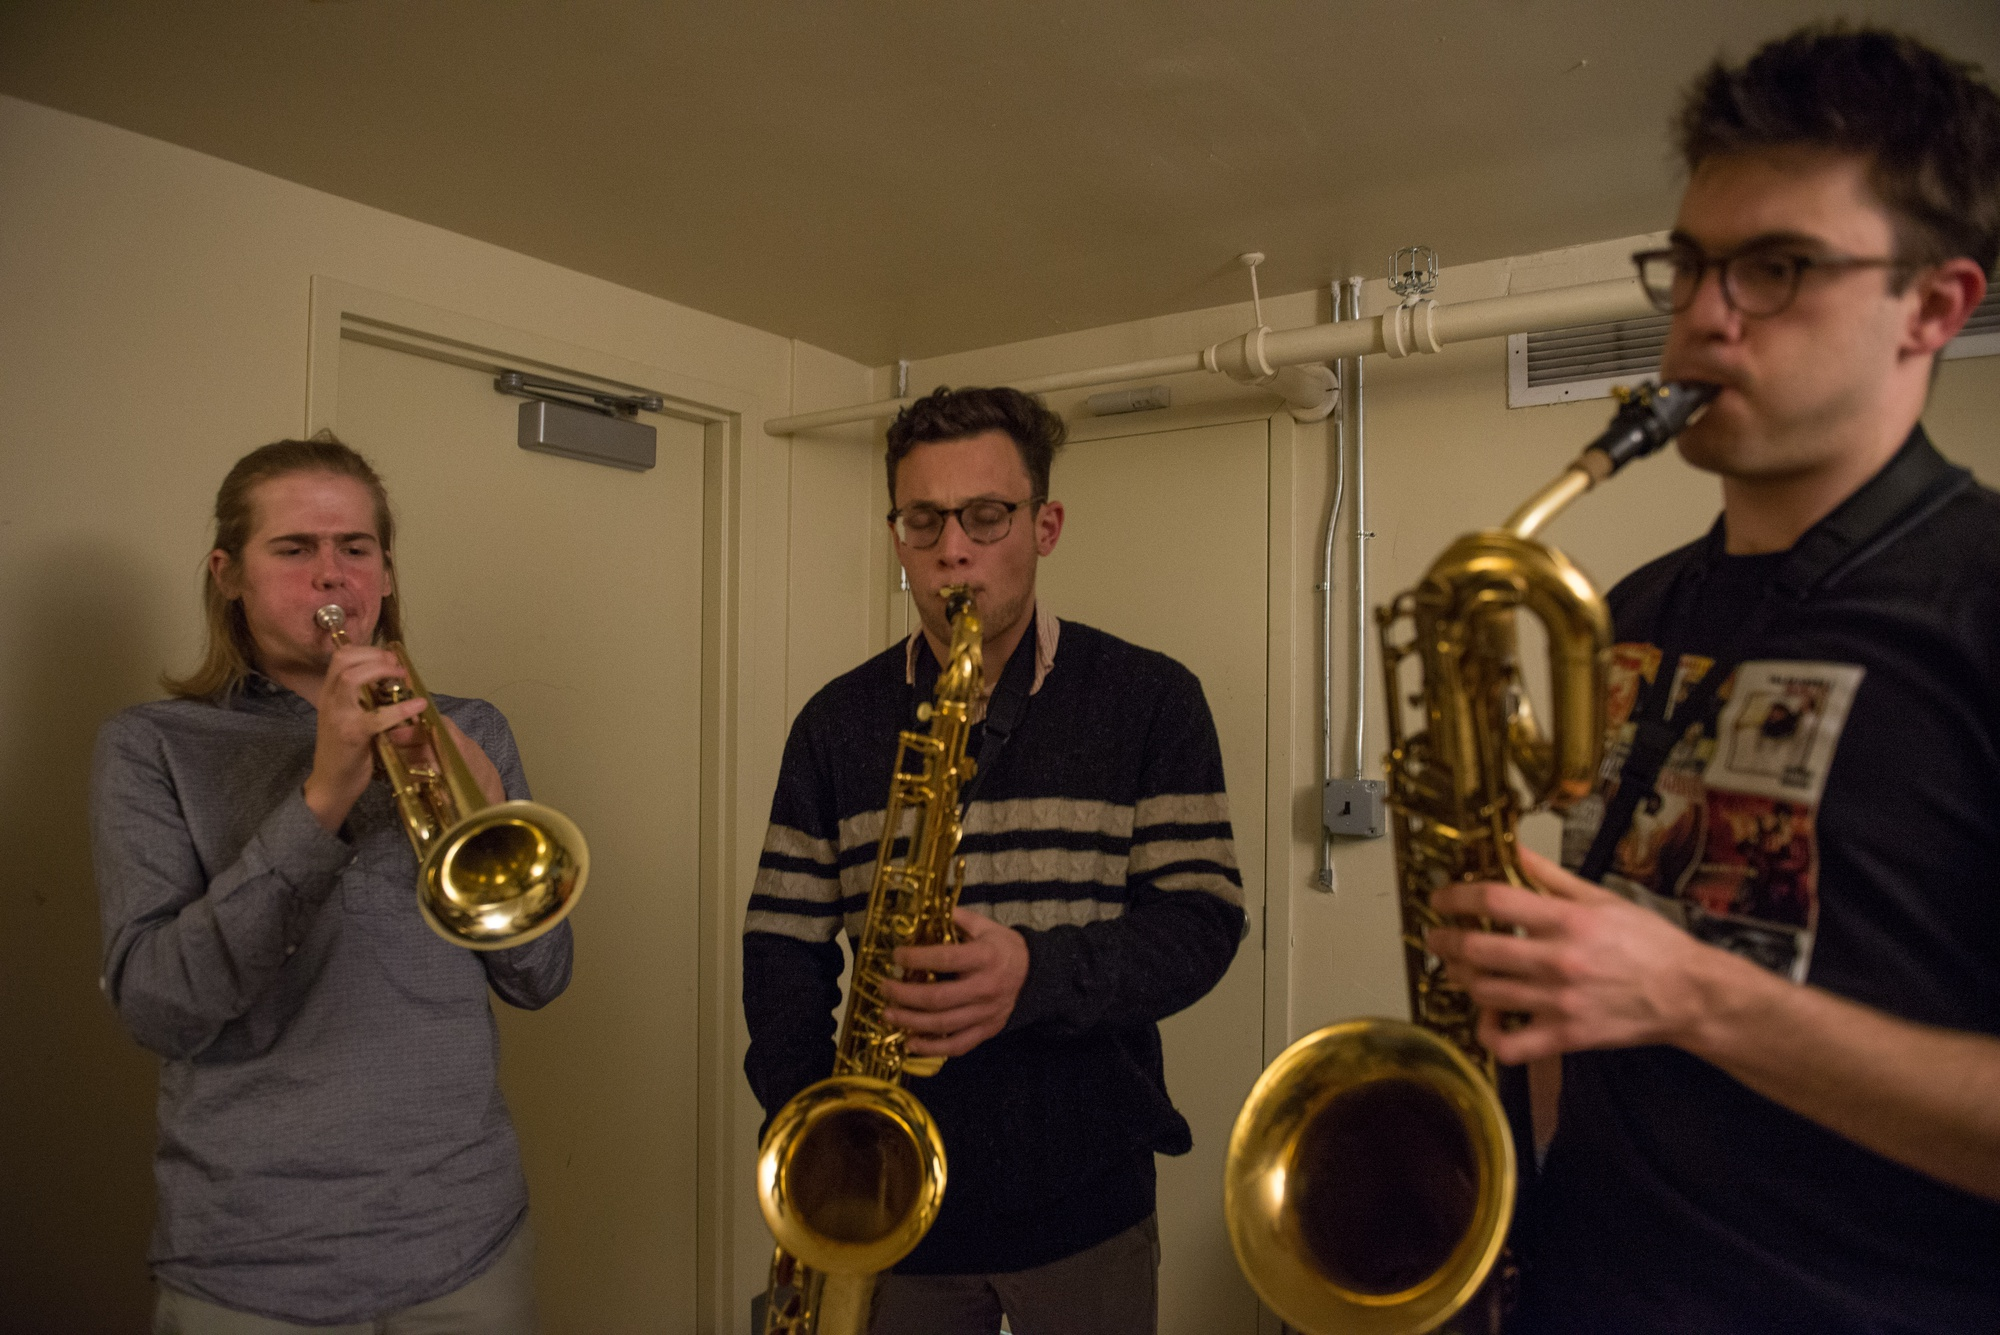 Tree A. Palmedo '16, Ben L. Sobel '16, and John B. Tournas '16 play trumpet and sax during an Intrinsics rehearsal in Lowell basement.